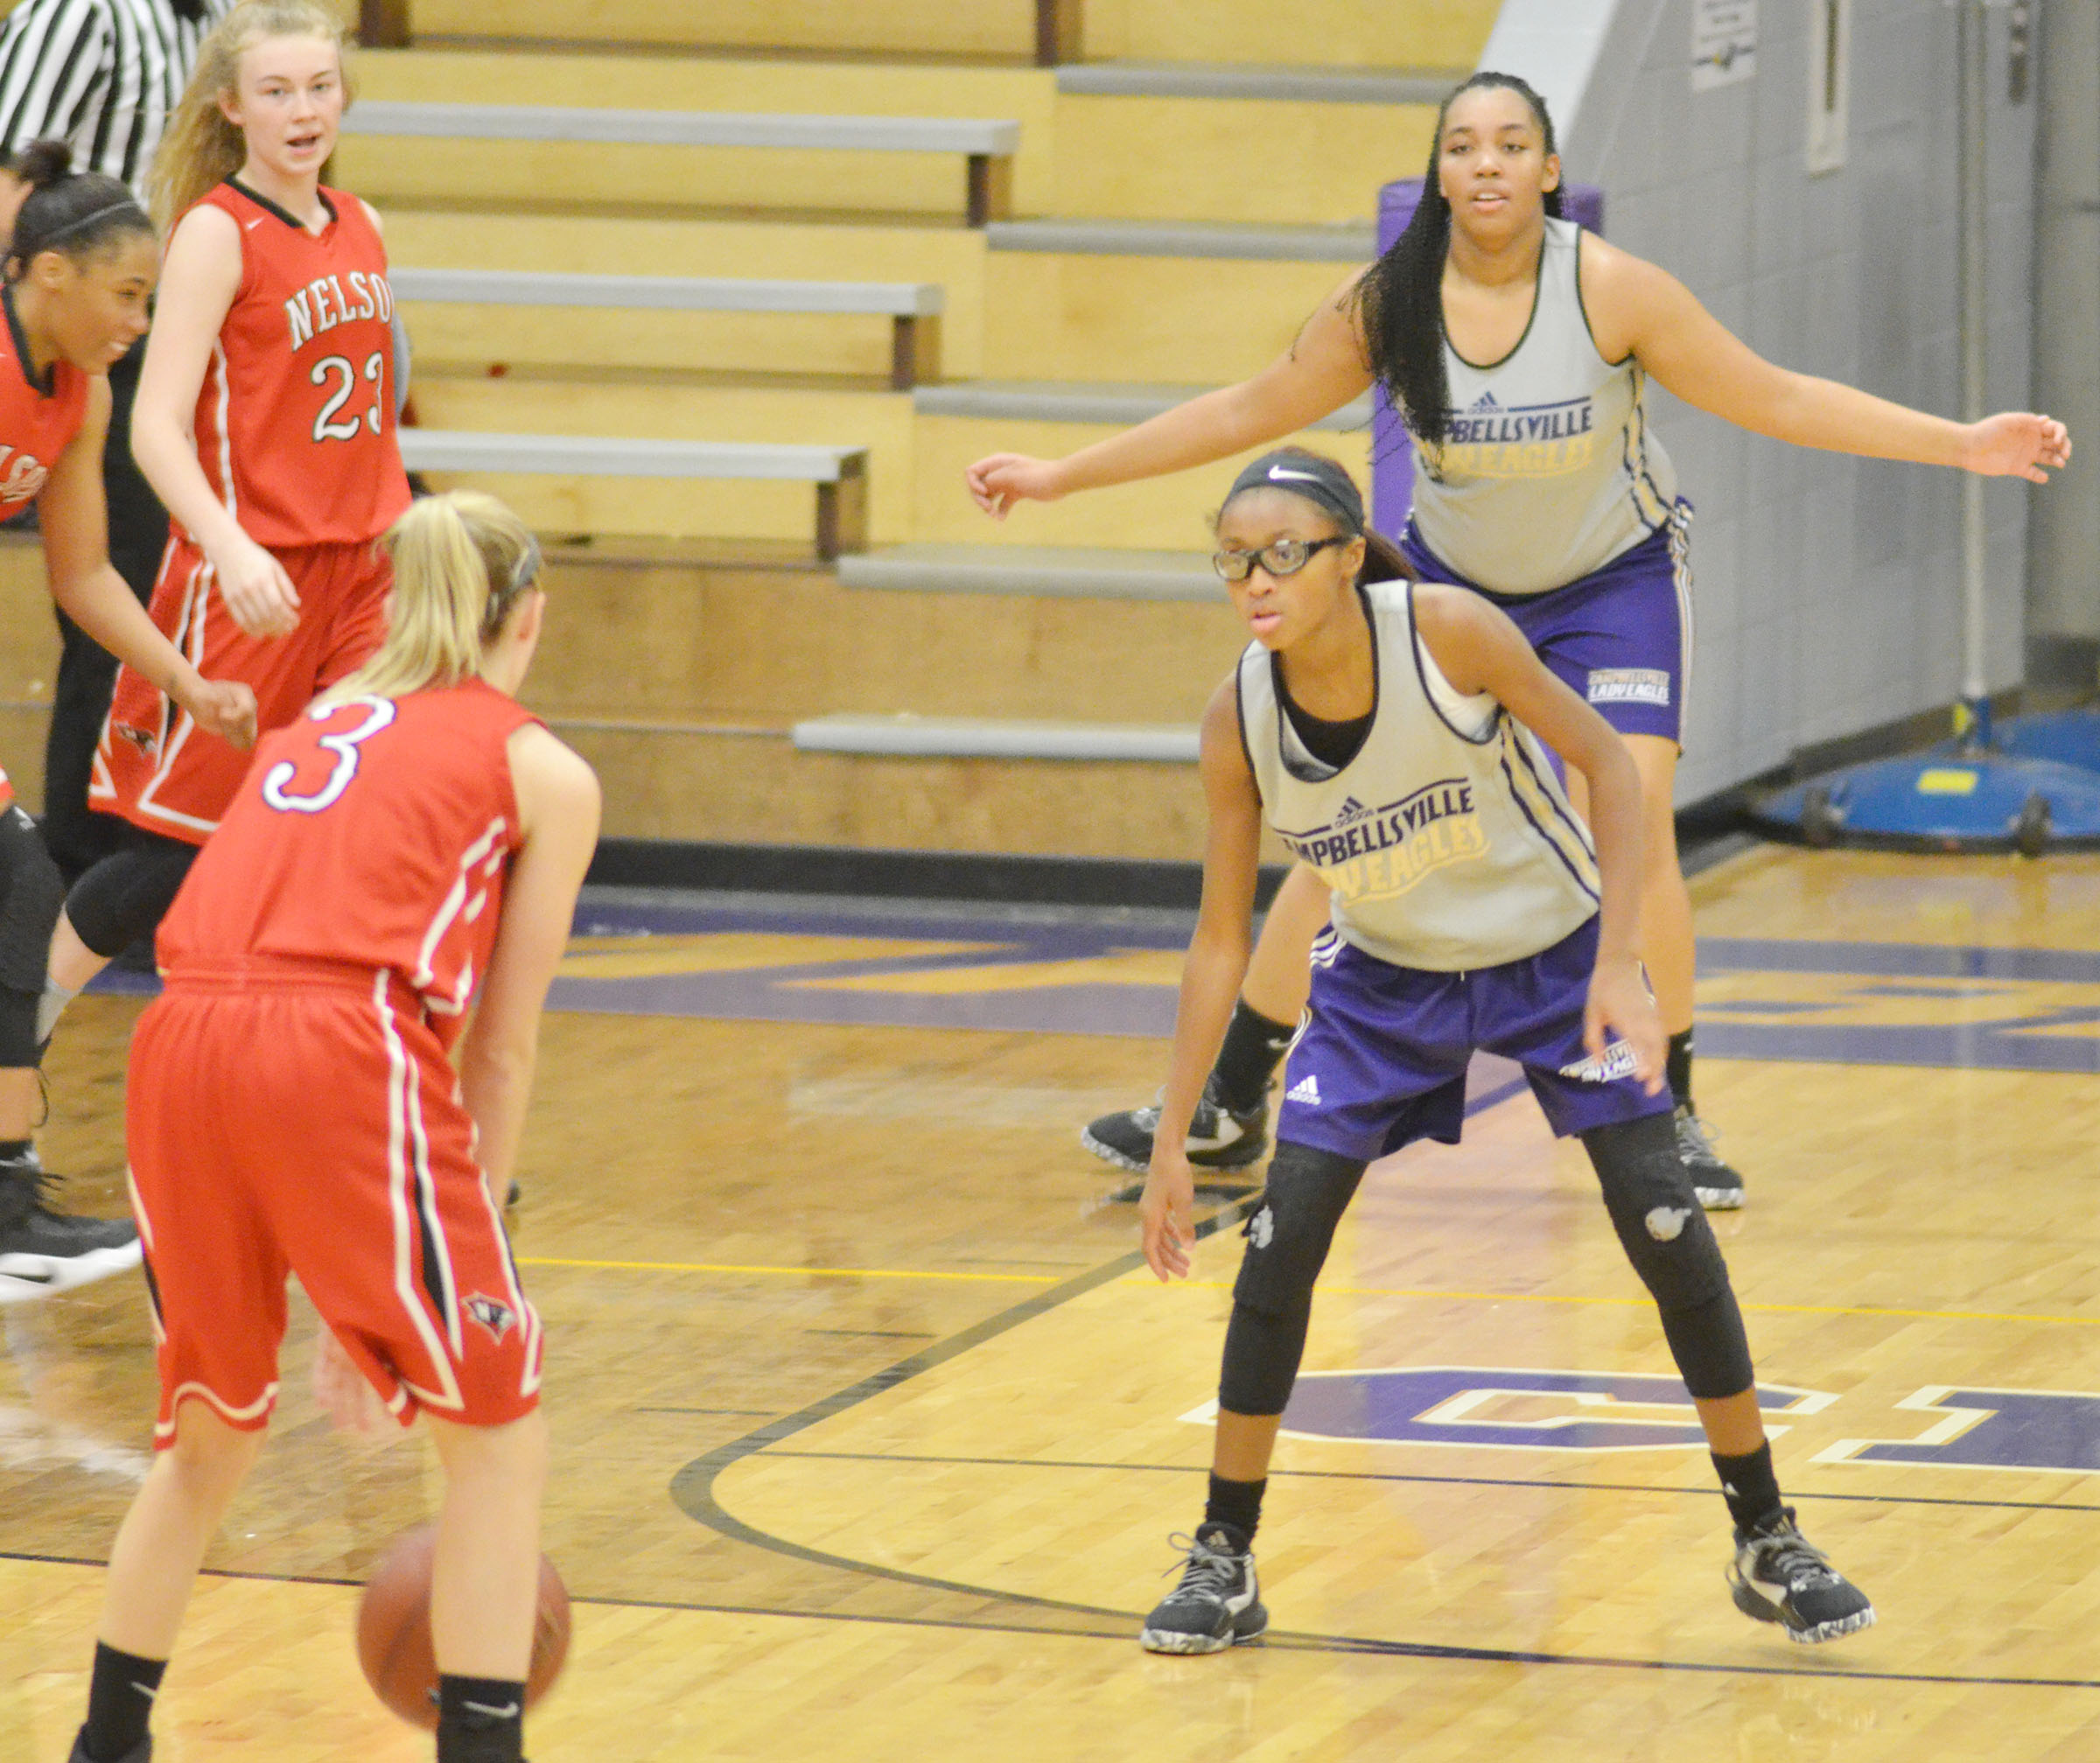 Campbellsville Middle School seventh-grader Bri Gowdy, in front, and CHS sophomore Malaya Hoskins play defense.